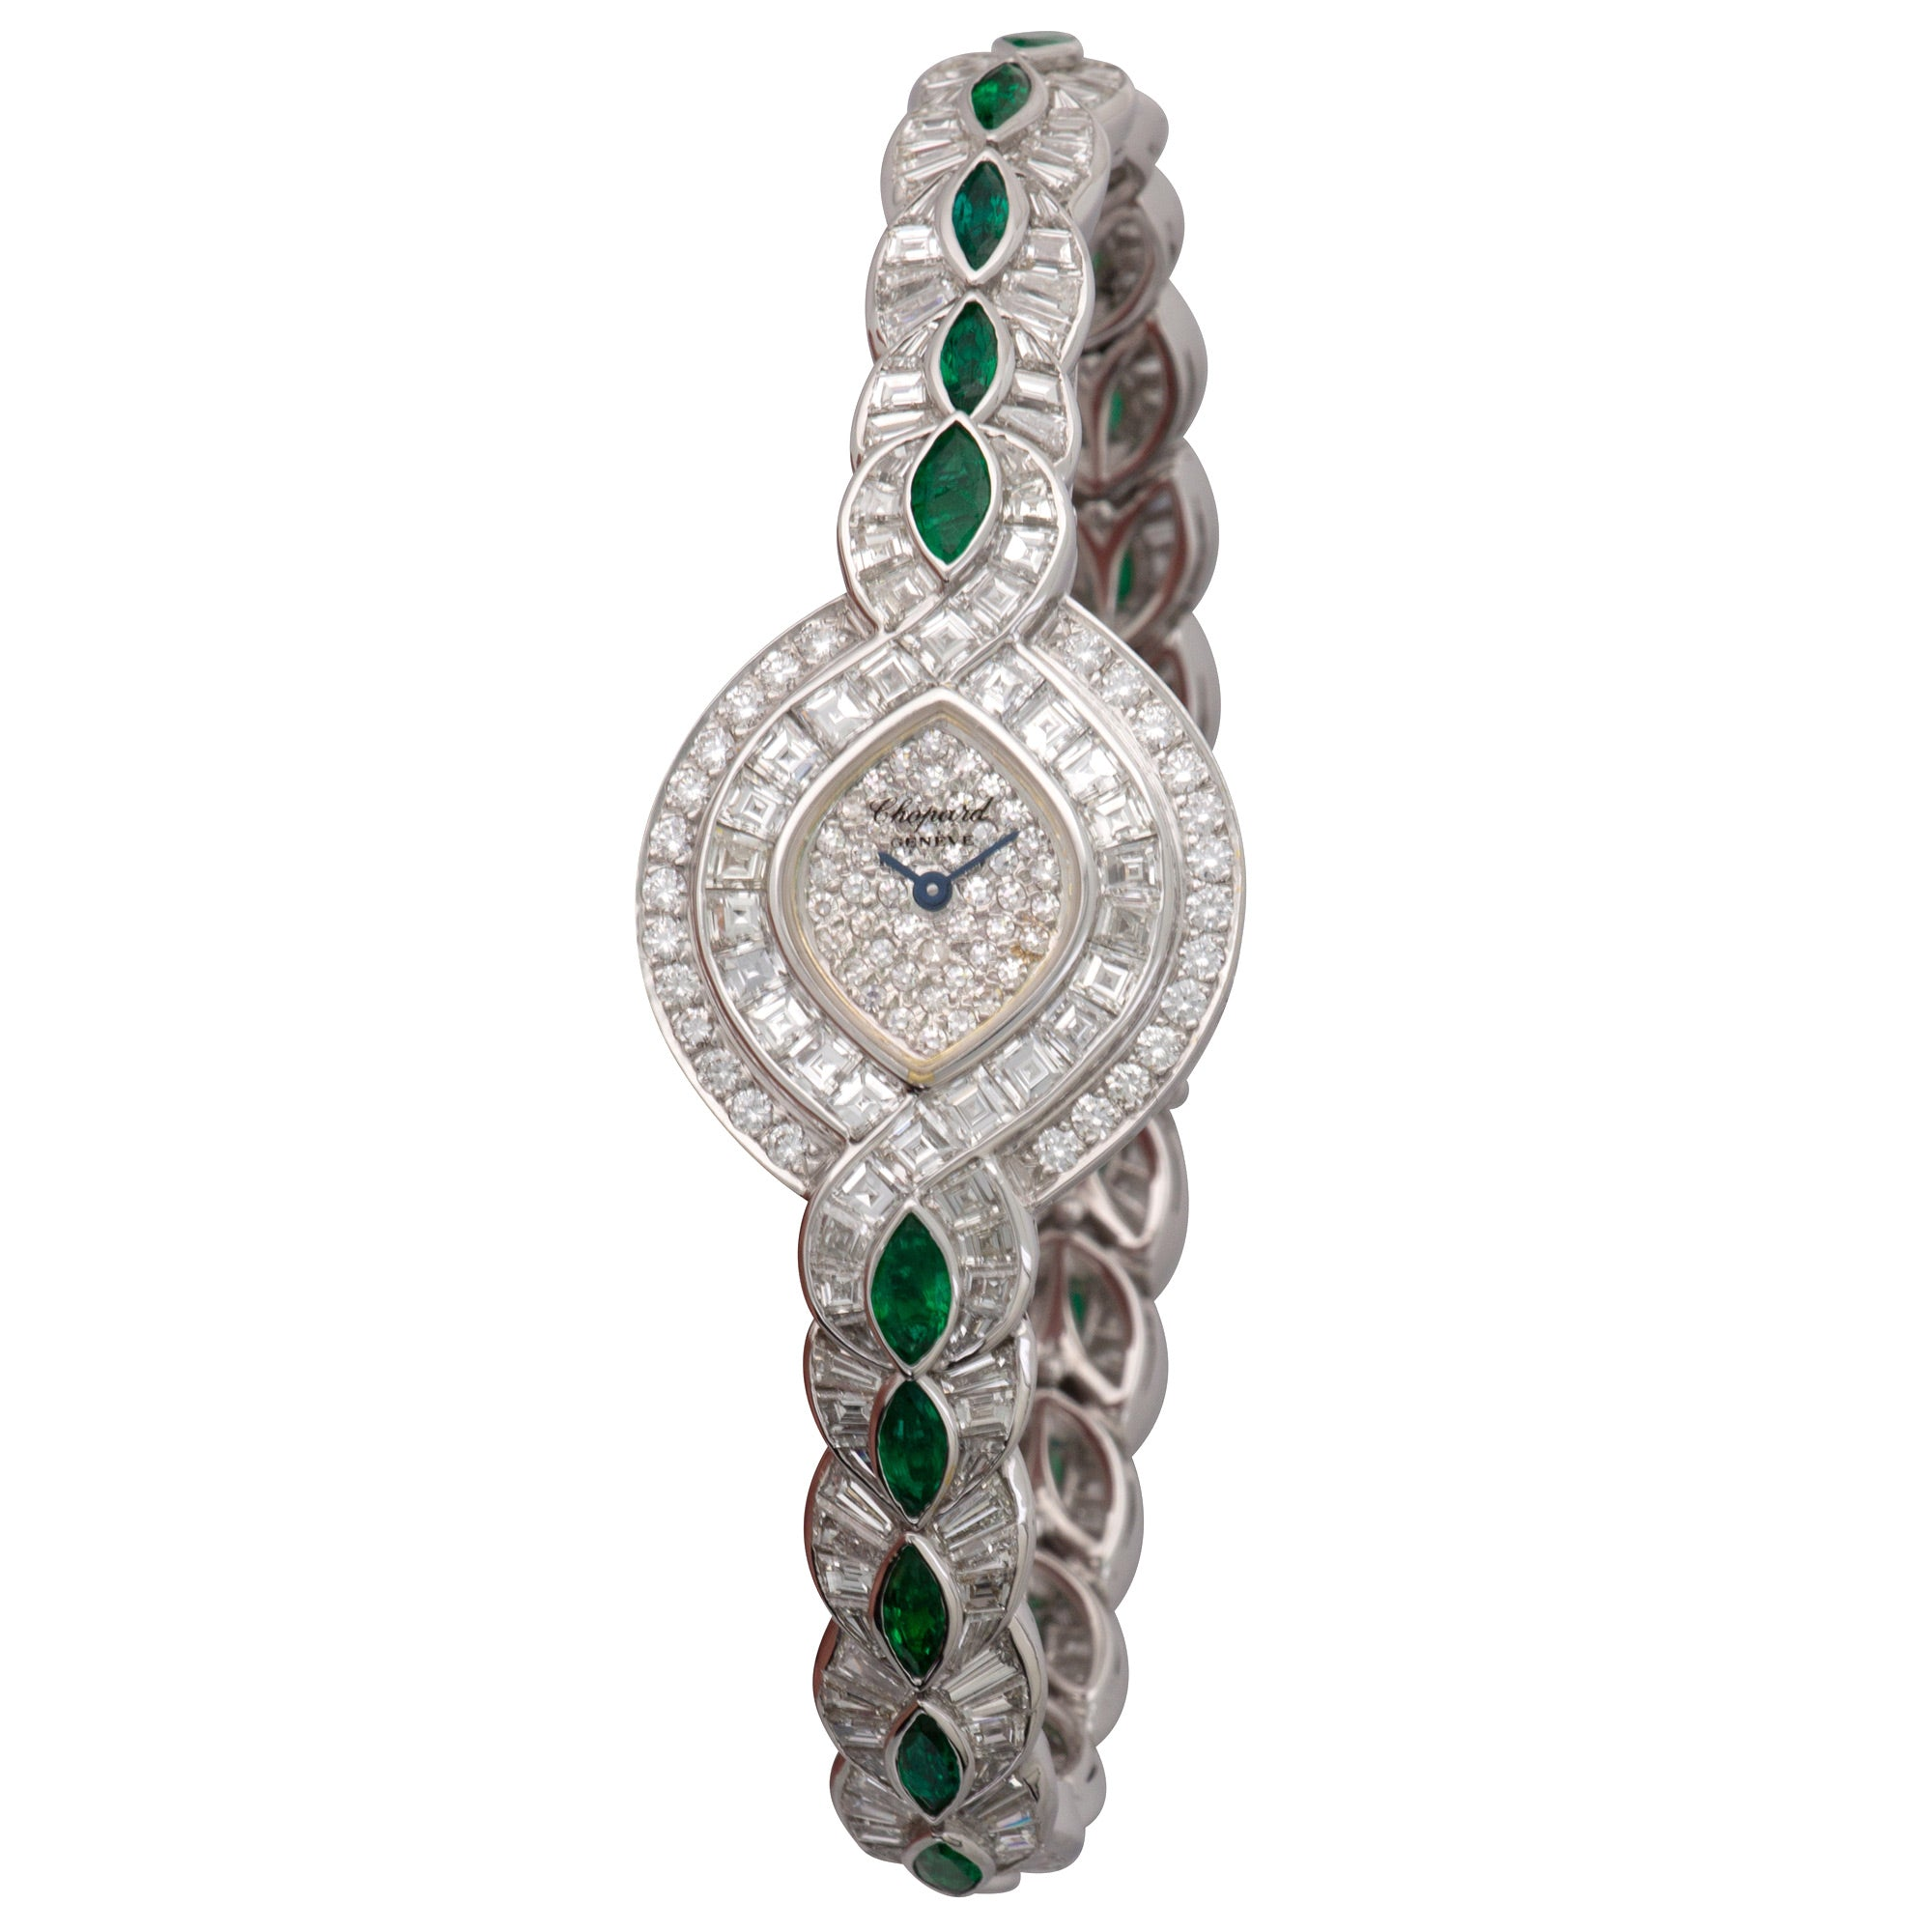 Chopard Classique 105922-1001 18k WG  Mint Ladies 18k WG Pave Diamond 25mm Quartz 2000s White Gold with Diamond and Emeralds Original Box